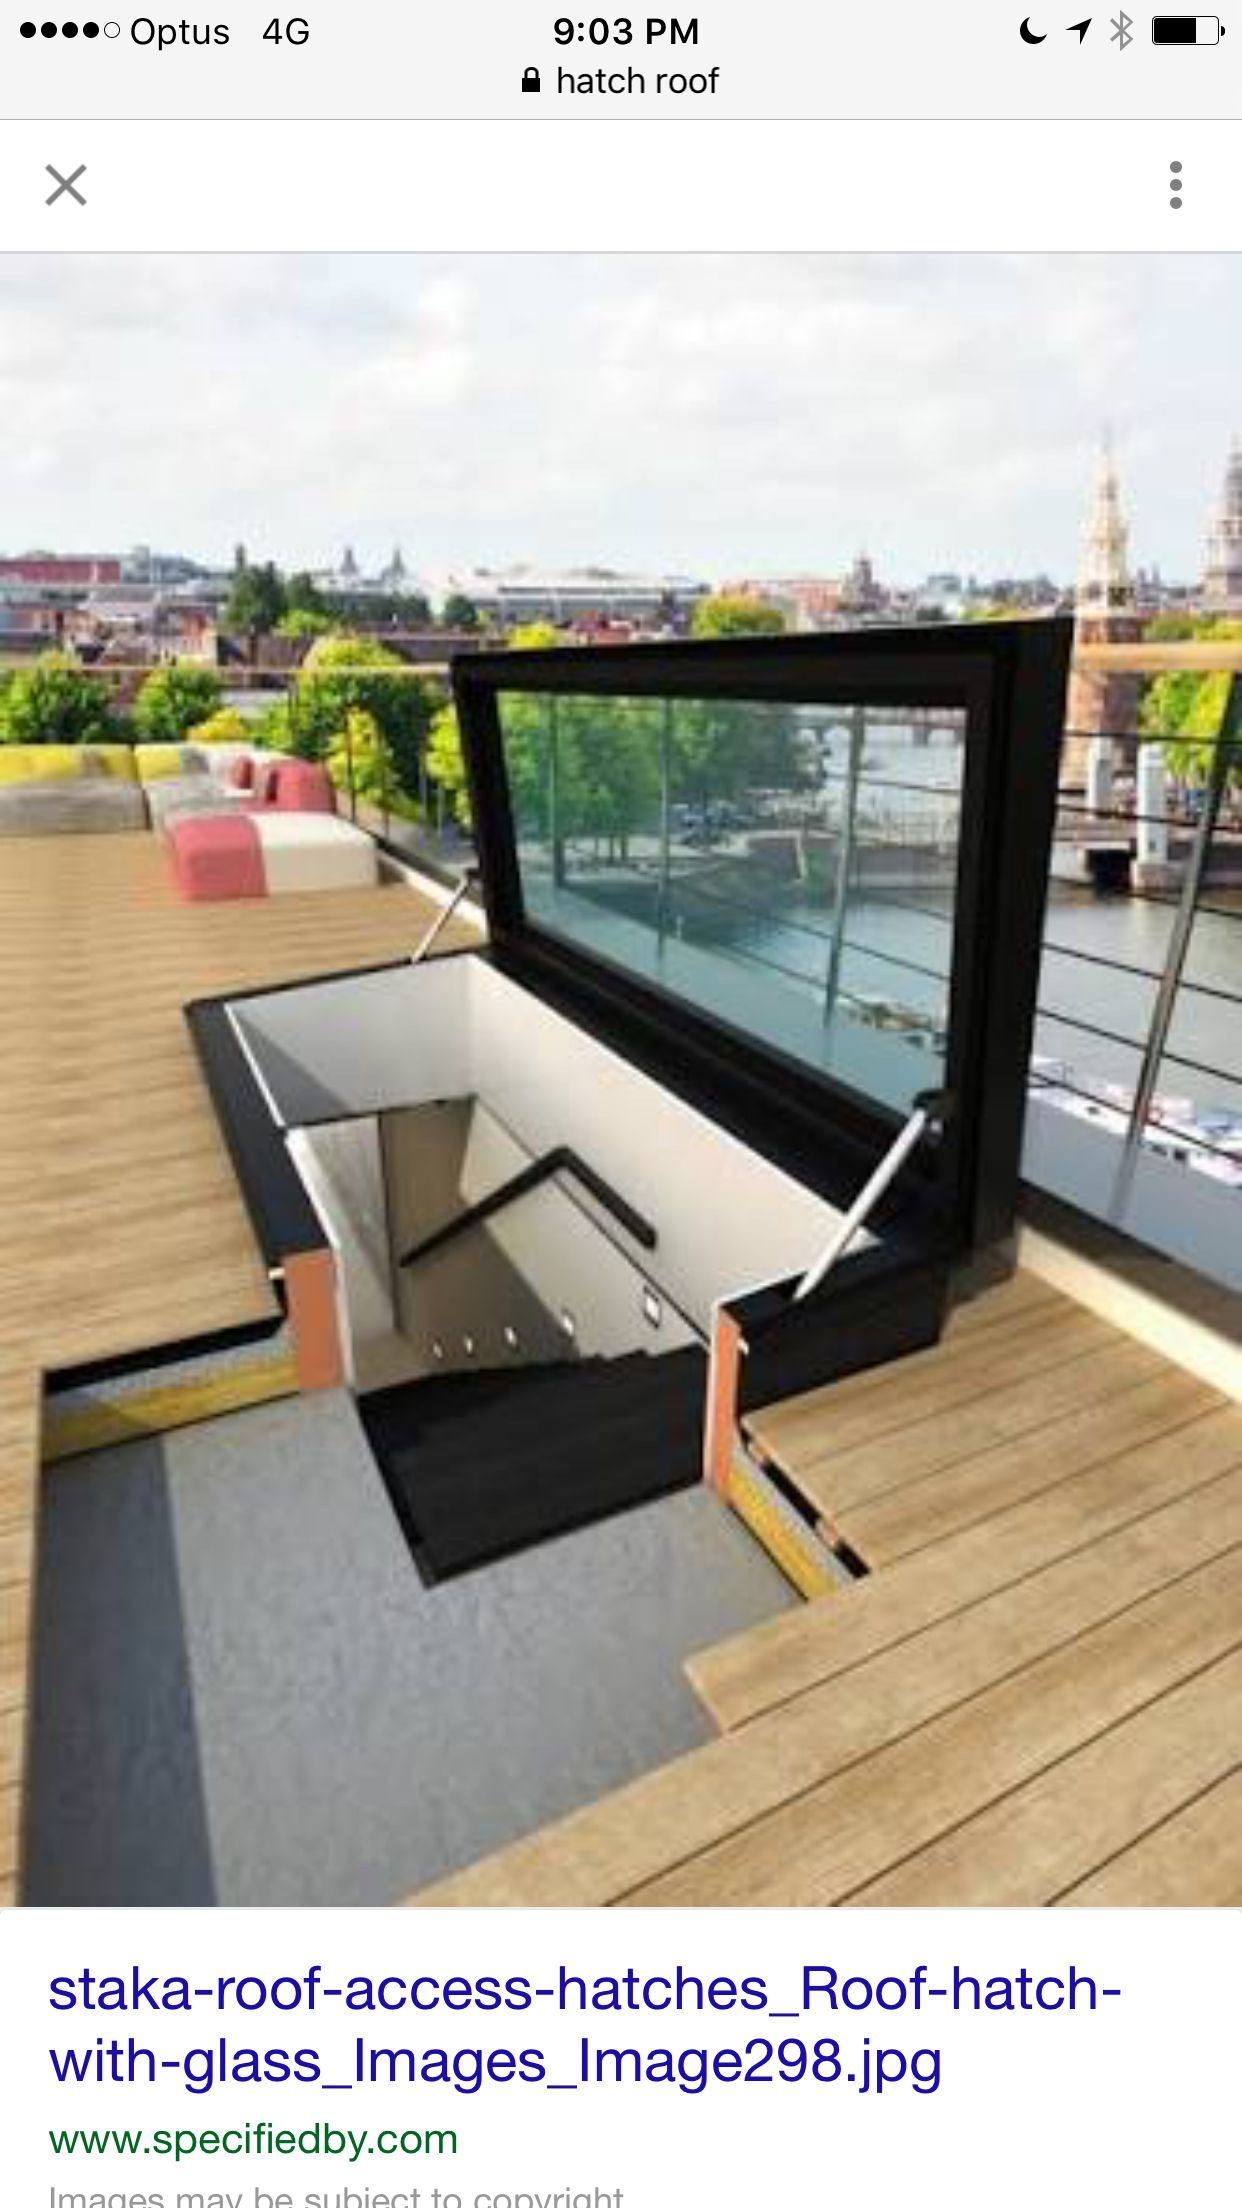 Pin By Kick Rockslosers On Rooftop Terrace Deck House Roof Rooftop Terrace Design Roof Hatch